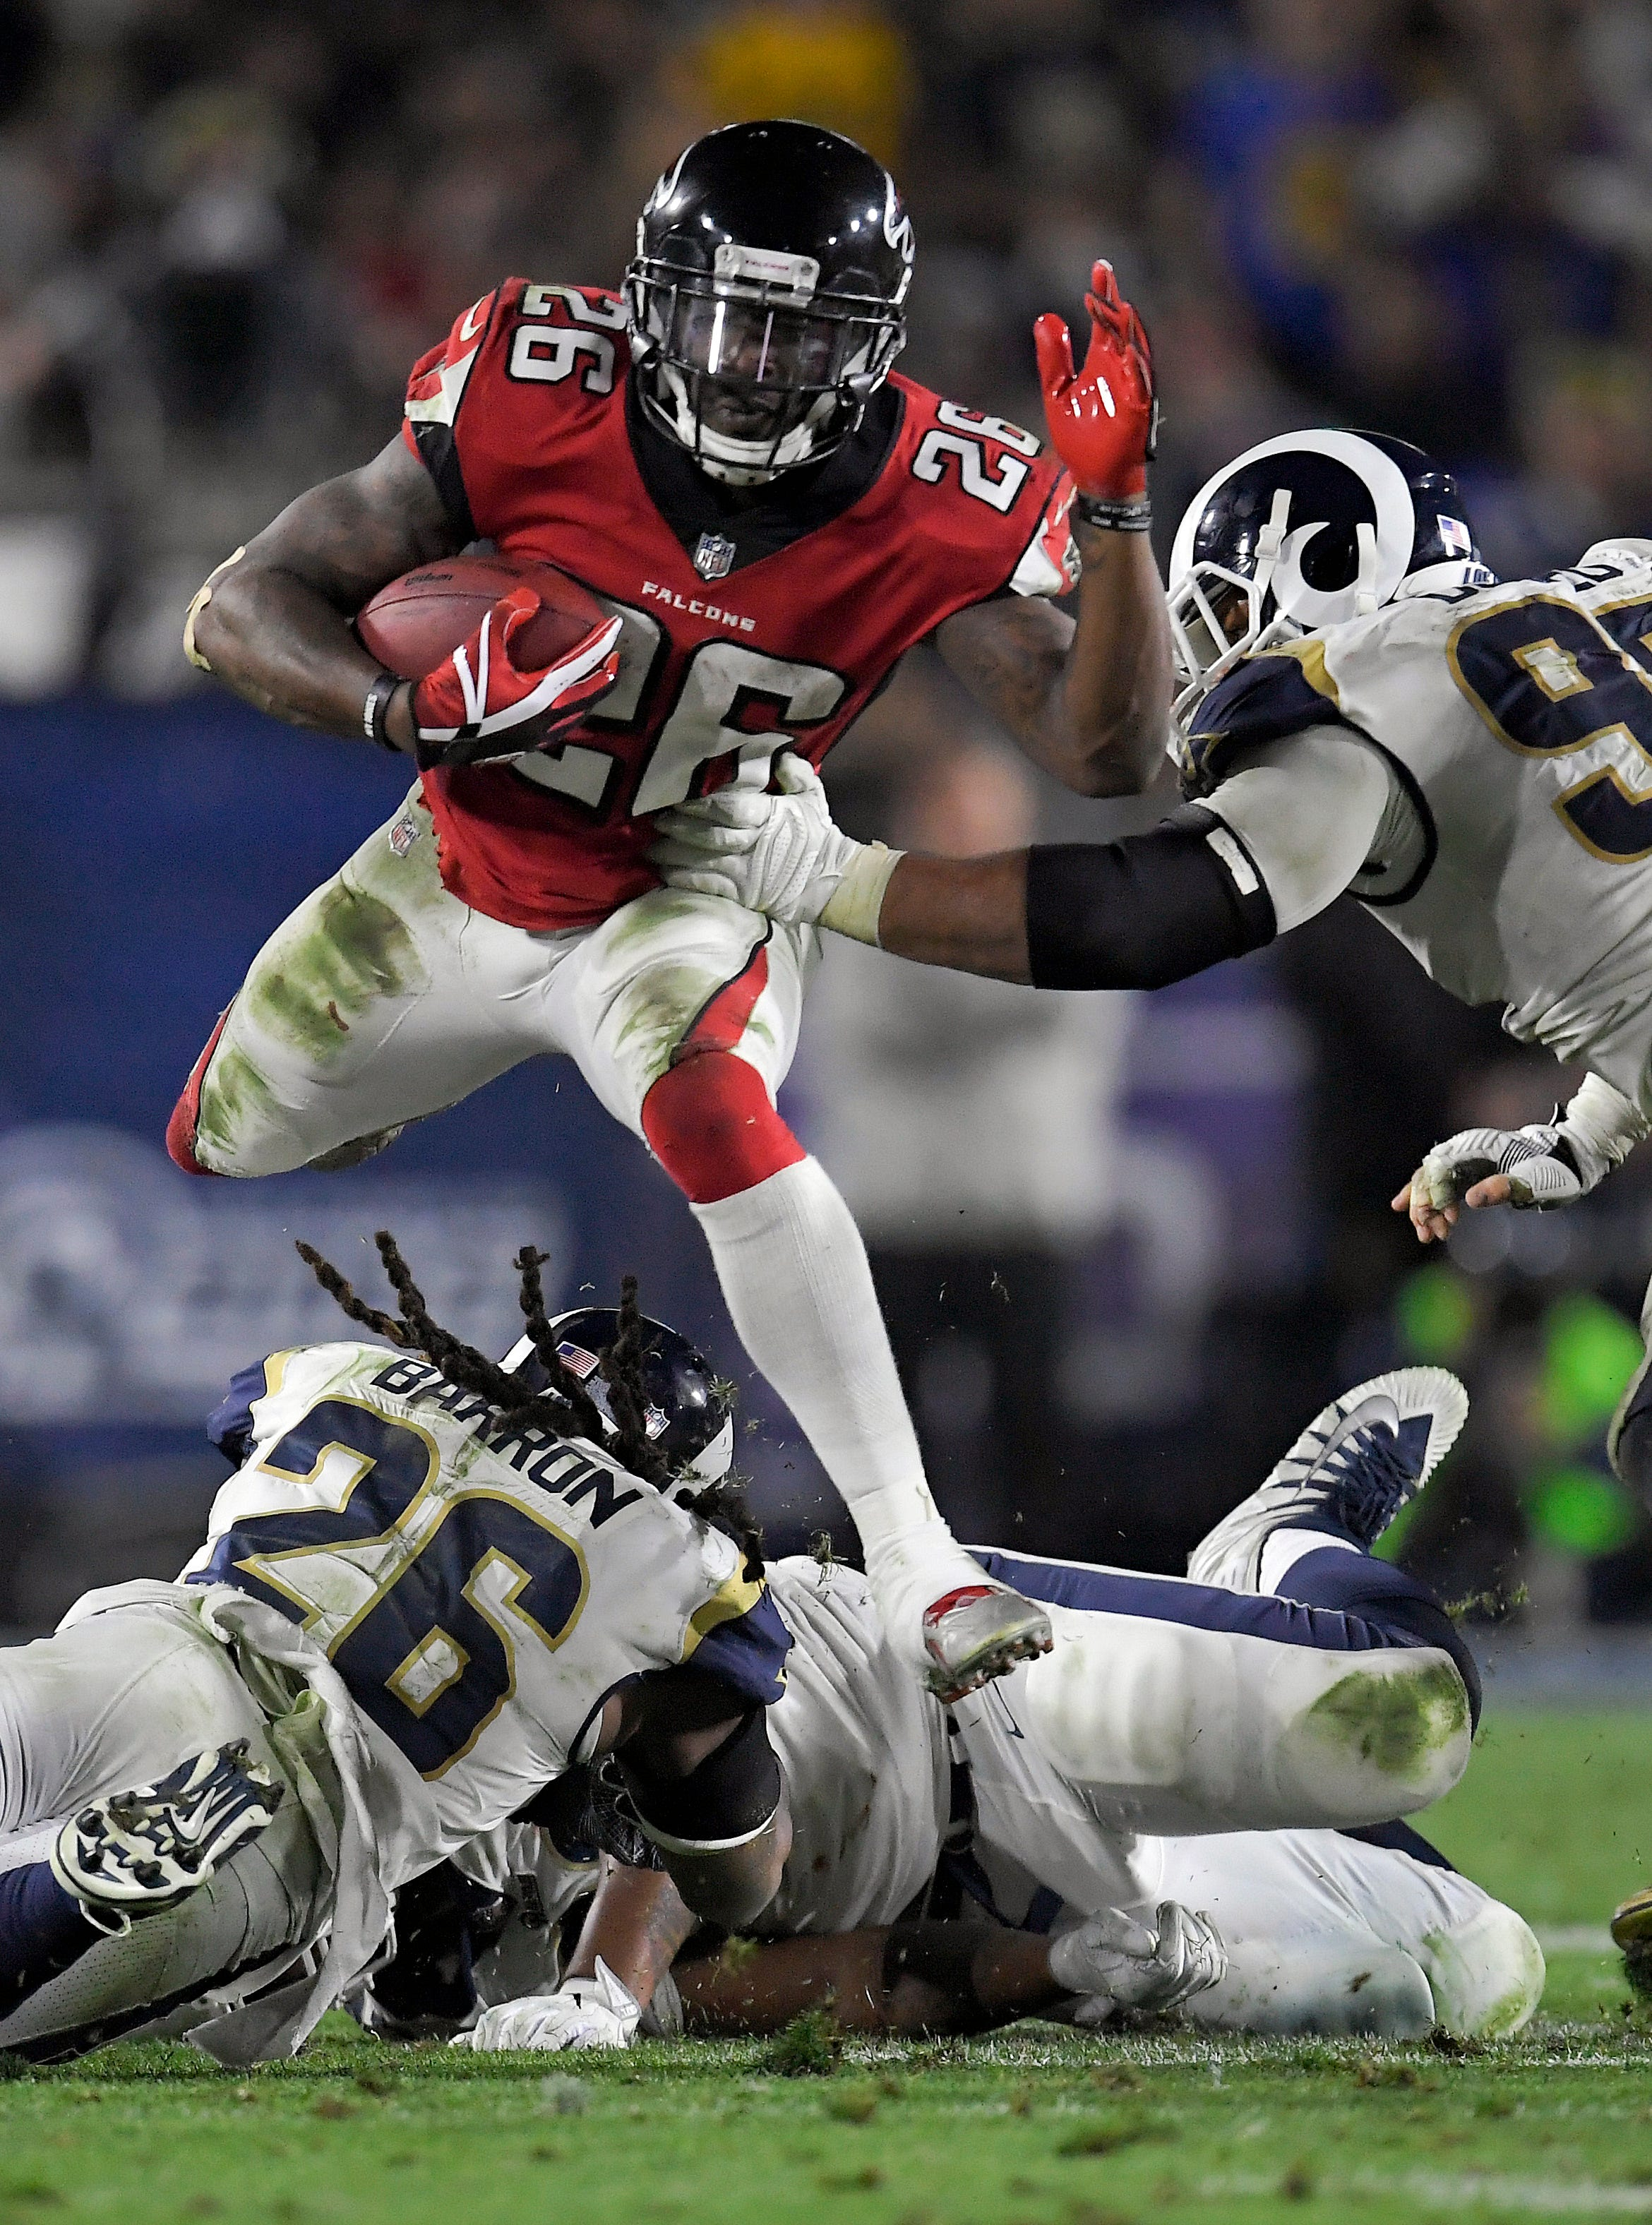 The Latest: Falcons topple Rams 26-13, face Eagles next